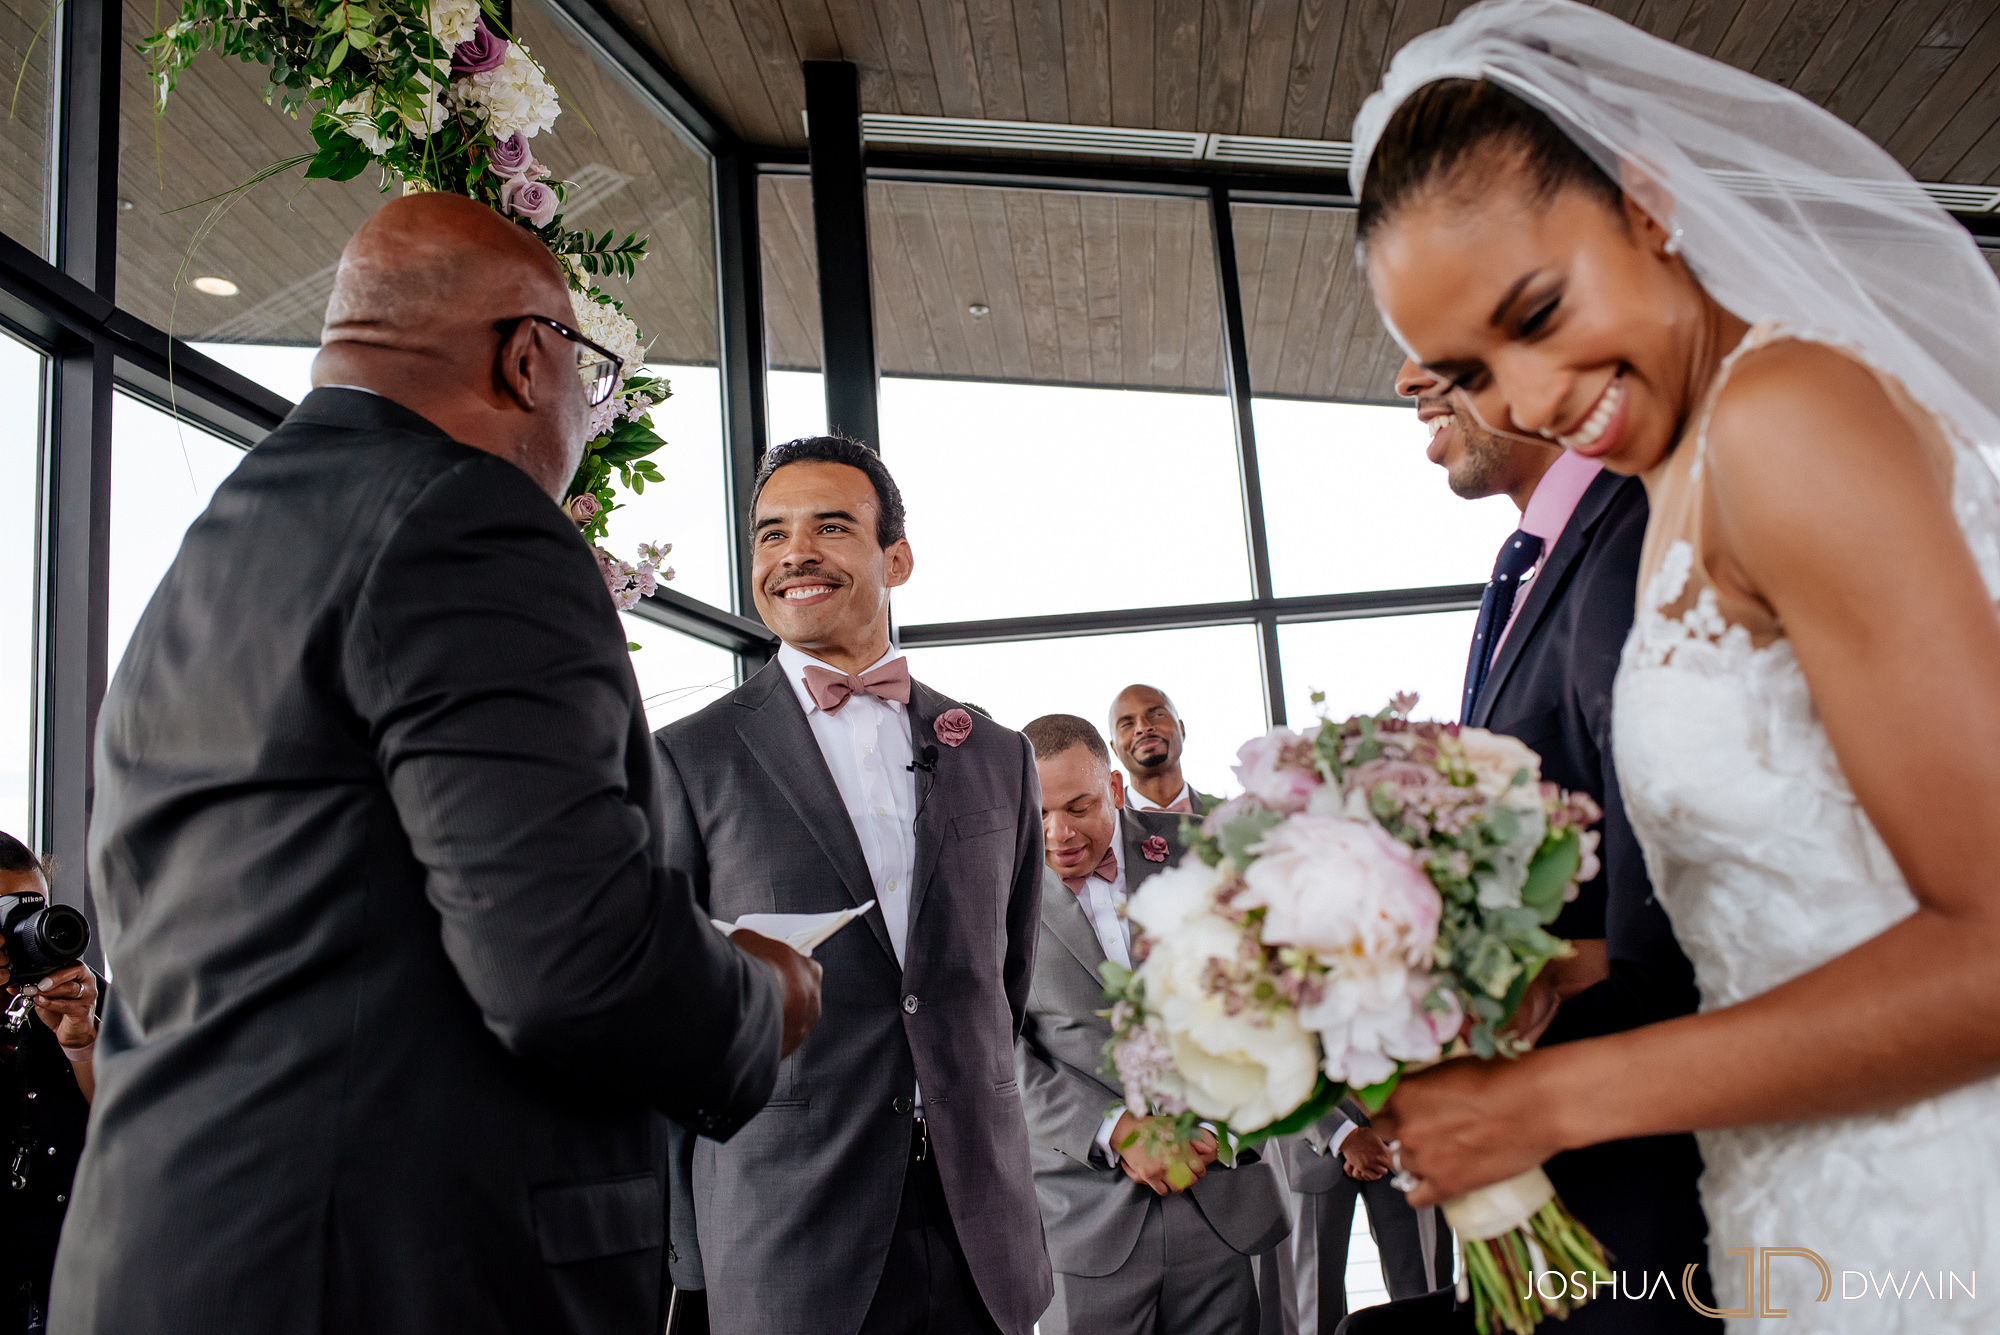 leshia-adam-020-dc-wharf-wedding-photos-joshua-dwain-photographer